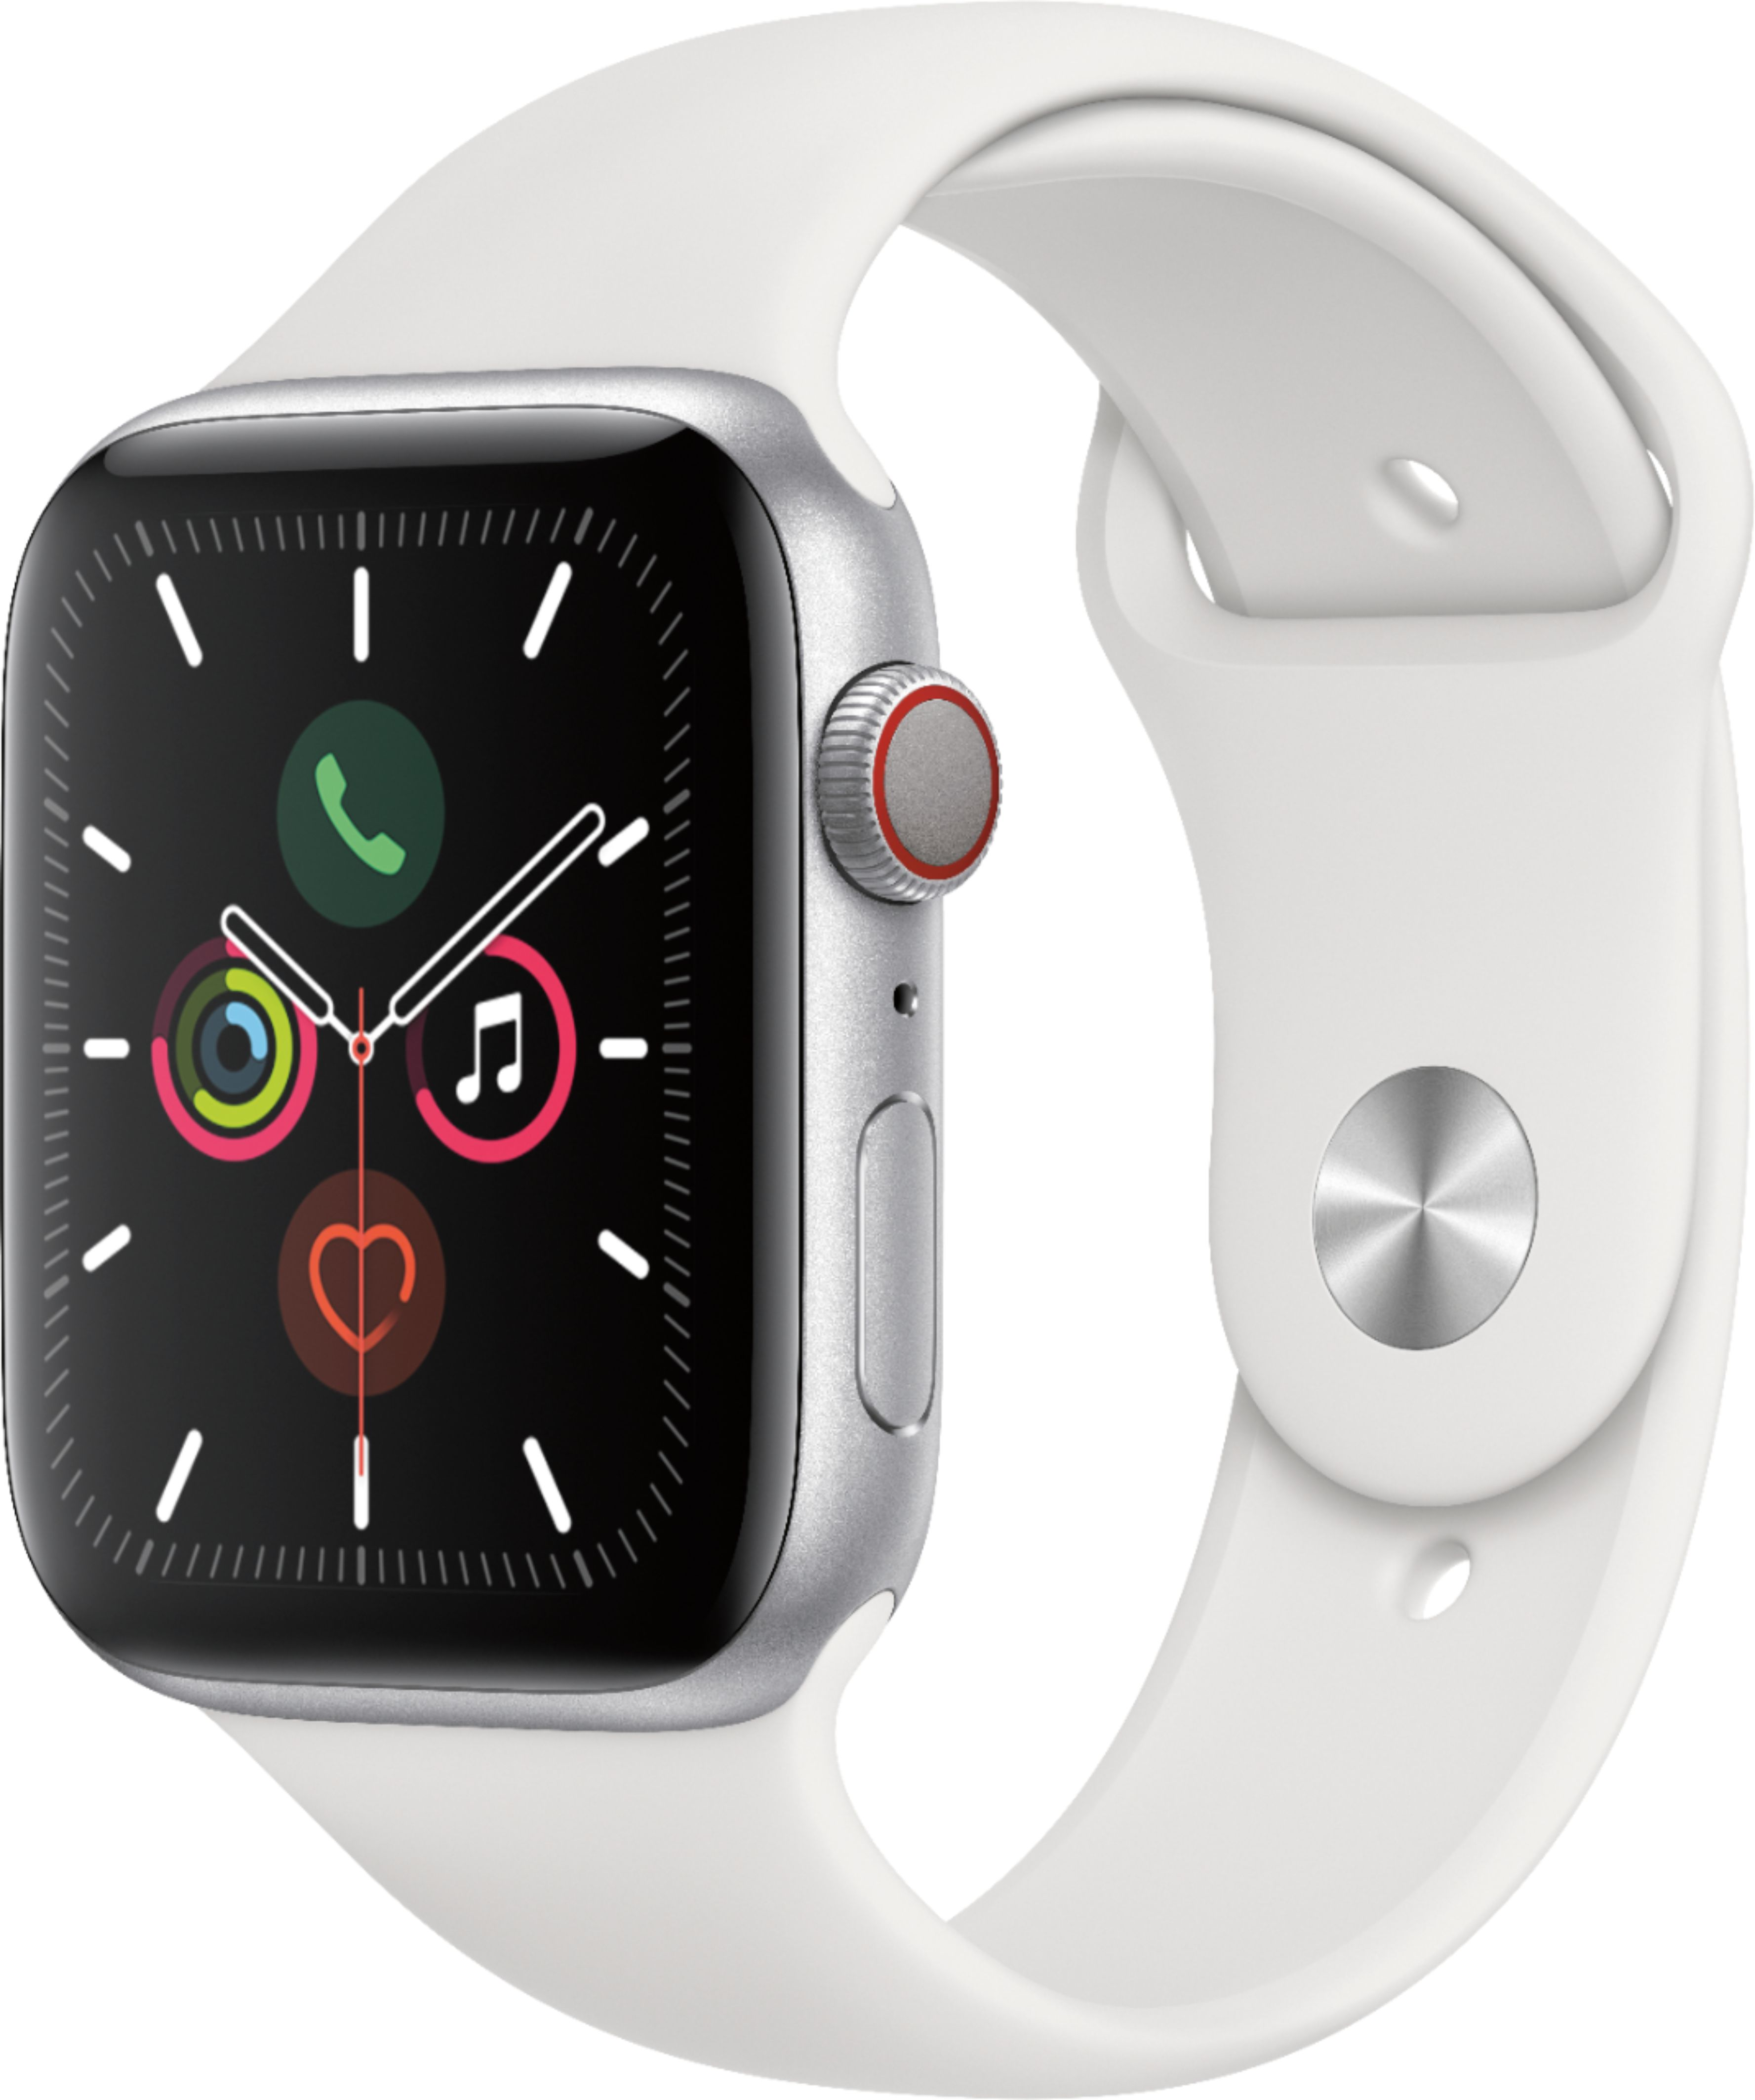 Apple - Apple Watch Series 5 (GPS + Cellular) 44mm Silver Aluminum Case with White Sport Band - Silver Aluminum